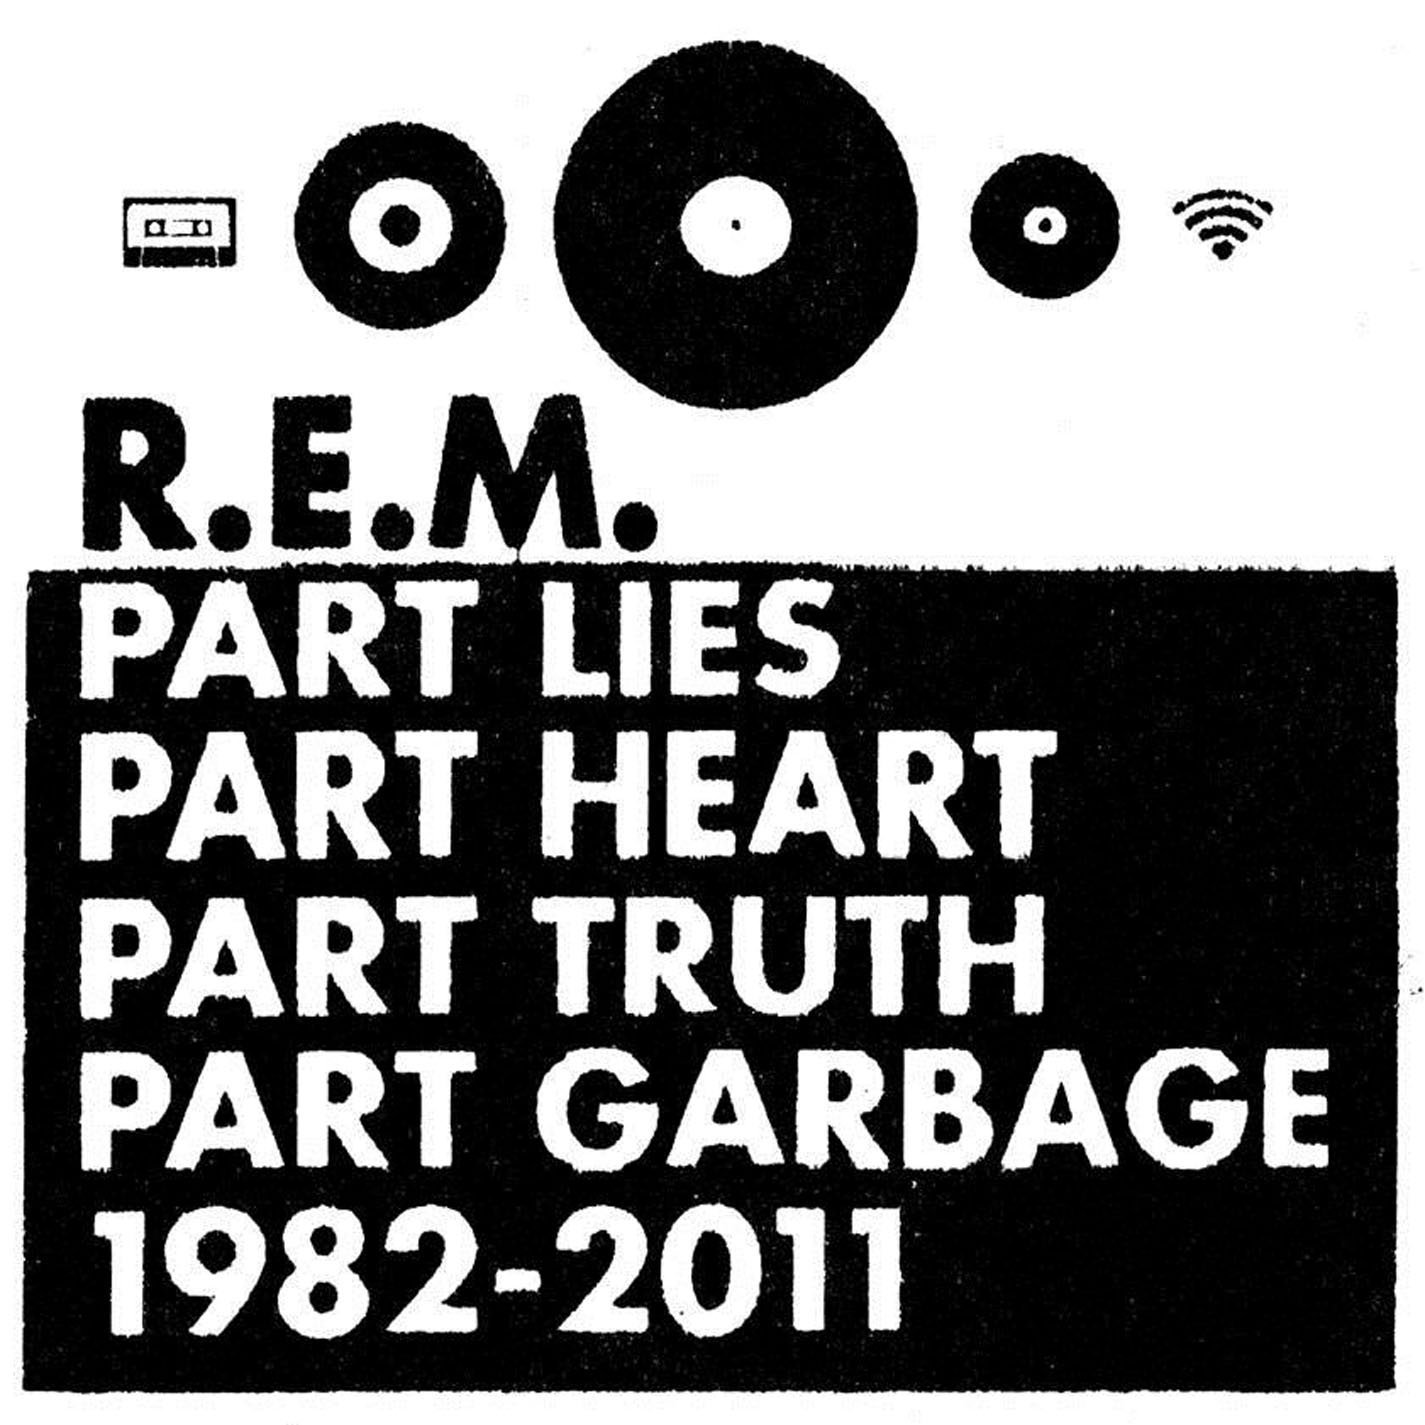 R.E.M., Part Lies, Part Heart, Part Truth, Part Garbage: 1982 - 2011